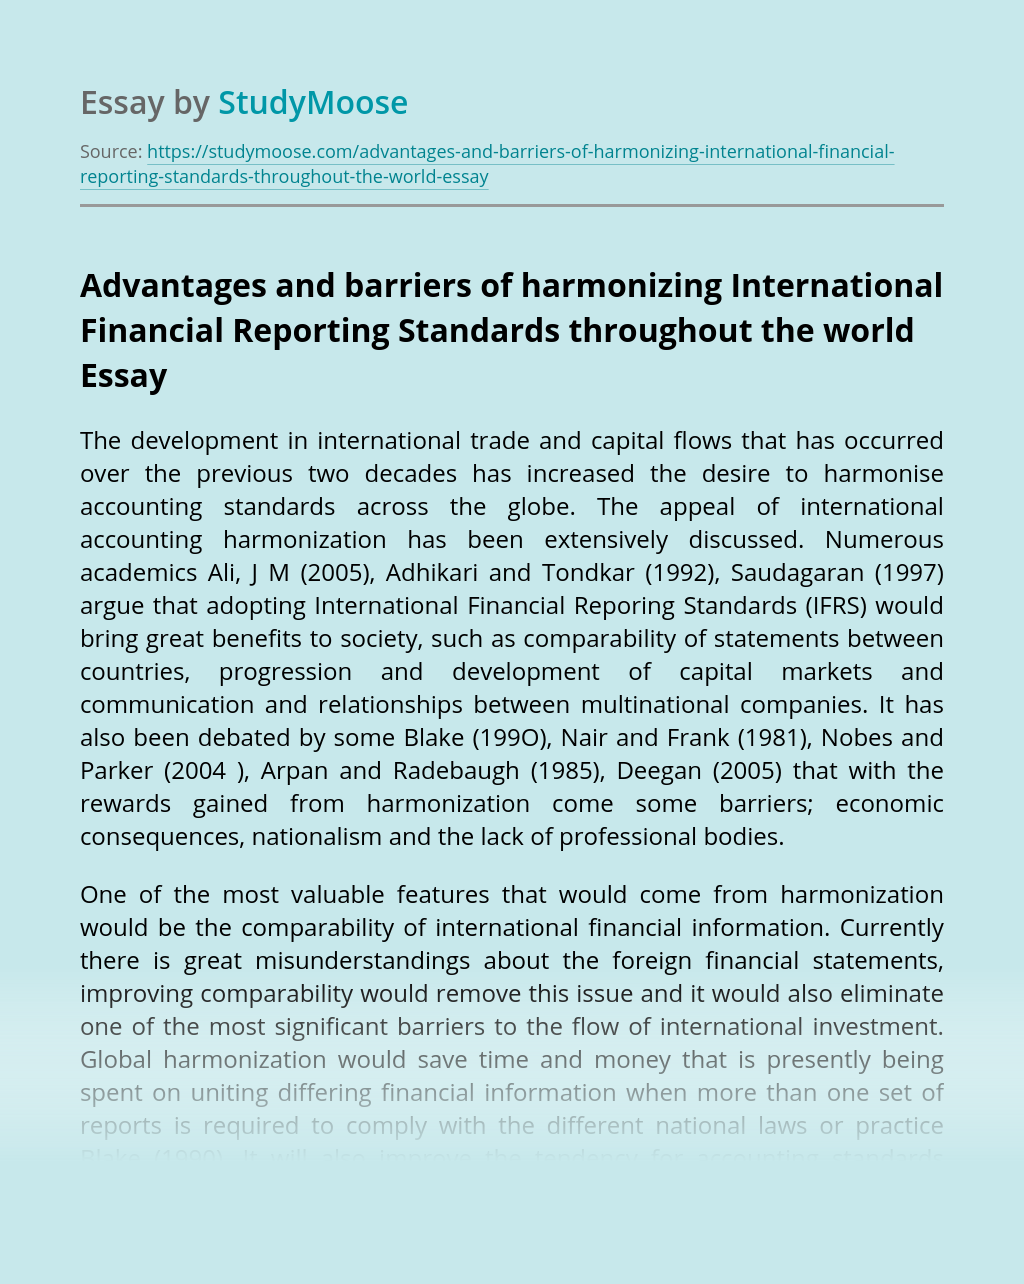 Advantages and barriers of harmonizing International Financial Reporting Standards throughout the world